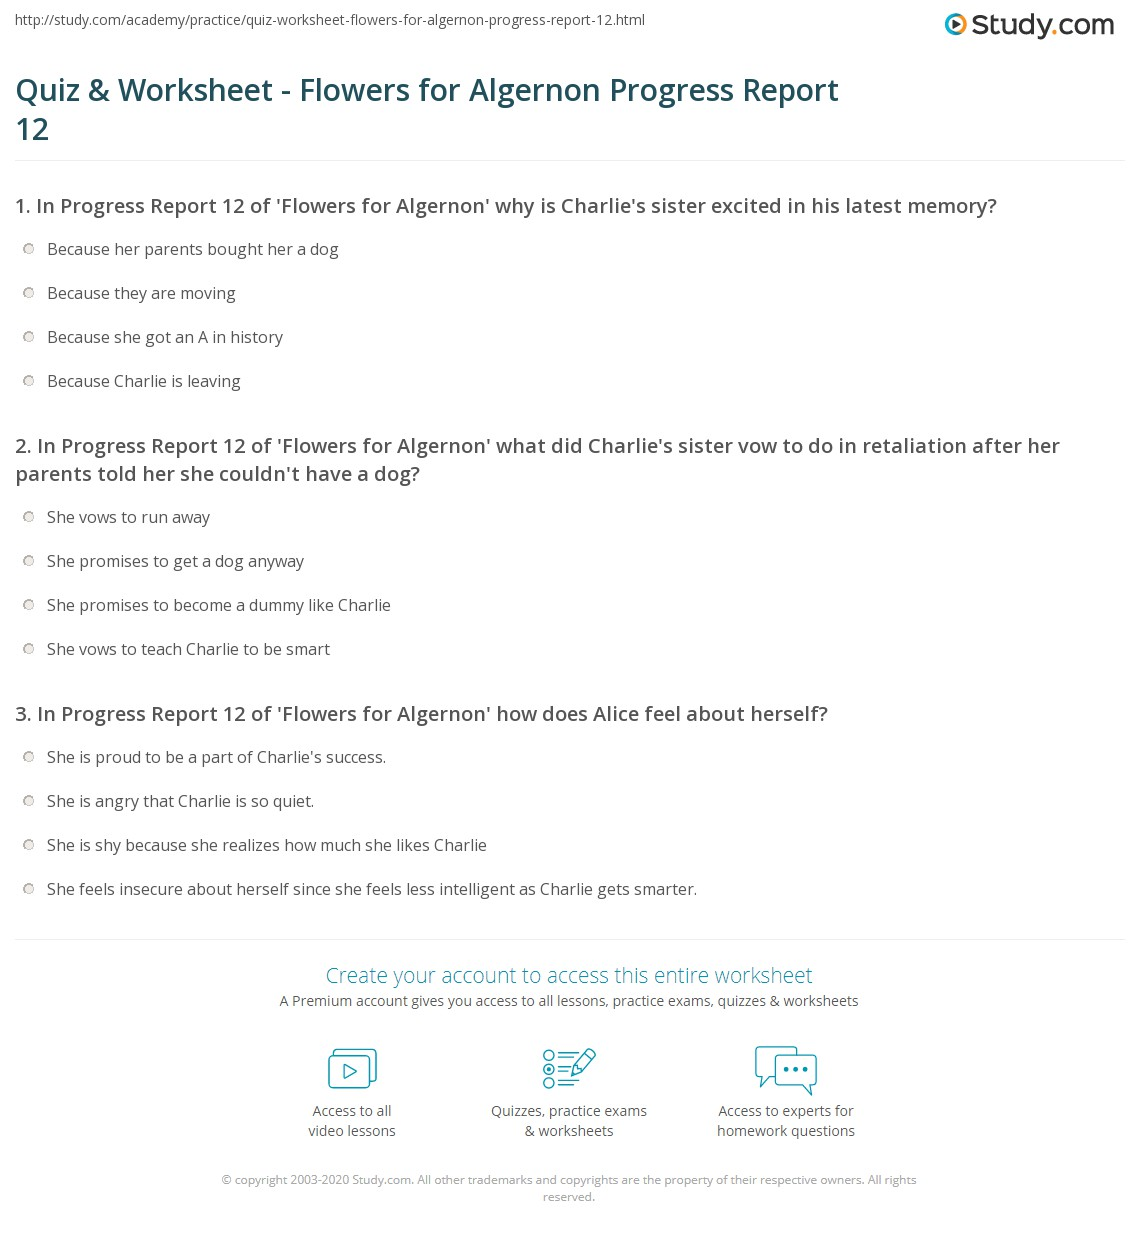 quiz worksheet flowers for algernon progress report com in progress report 12 of flowers for algernon what did charlie s sister vow to do in retaliation after her parents told her she couldn t have a dog